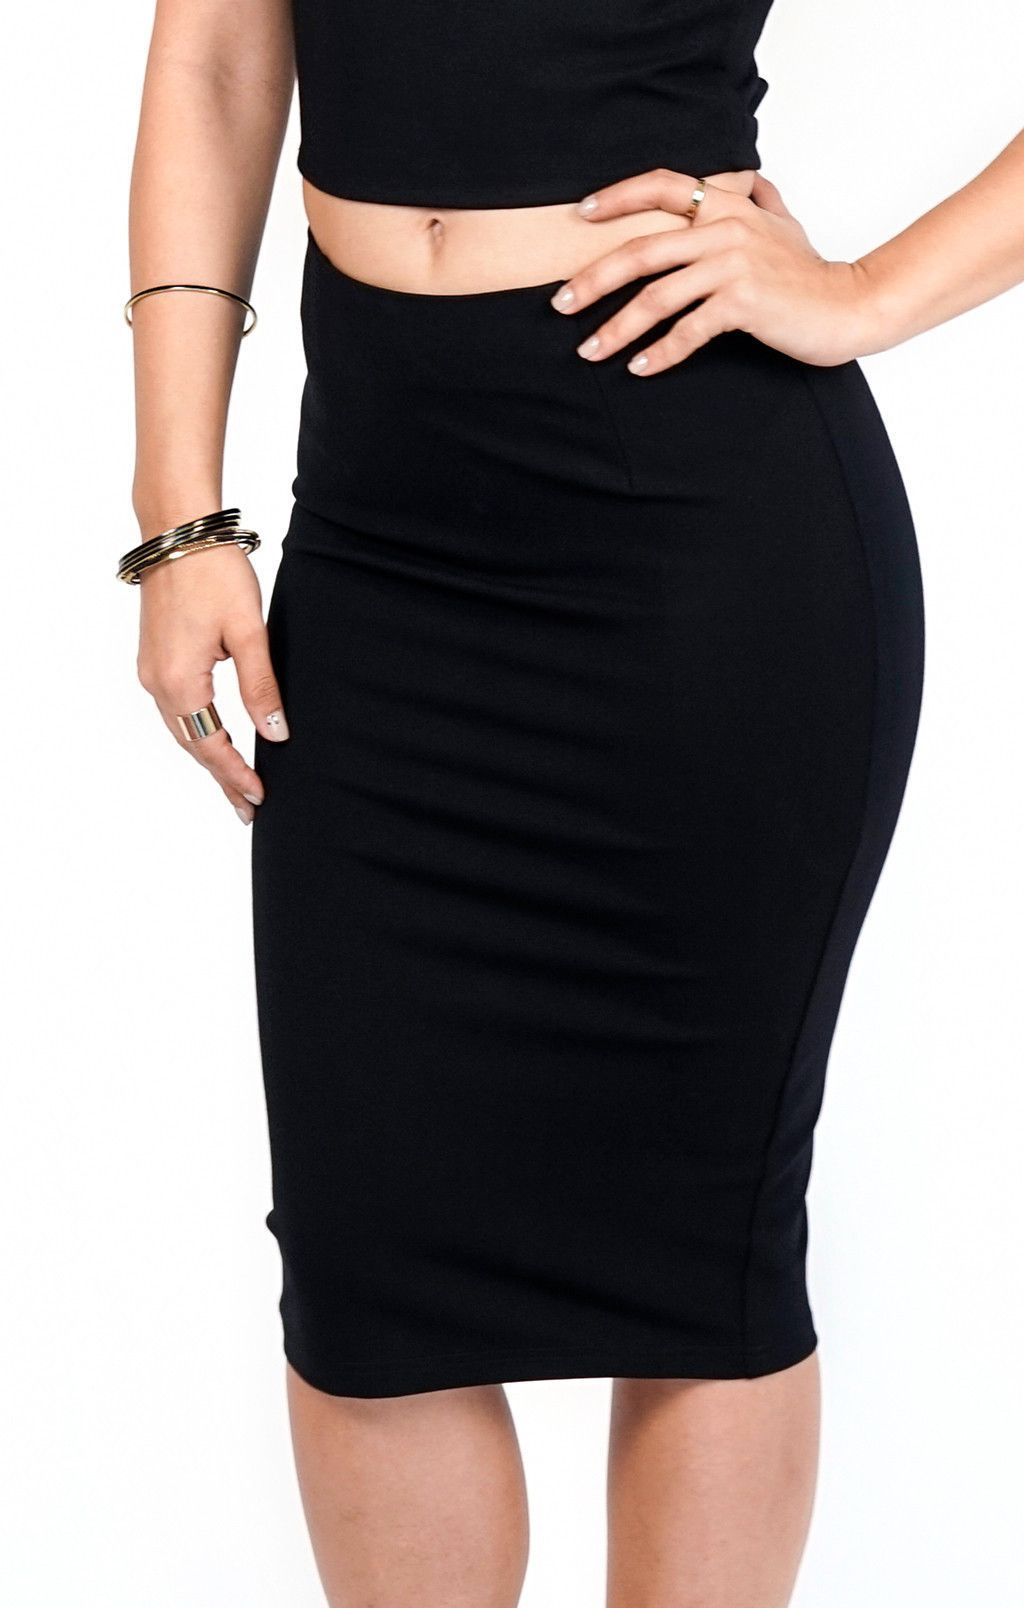 5fce1d32e8 EDITOR'S NOTES & DETAILS Black body fitted pencil skirt - 60% Cotton - 36%  Polyamide - 4% Spandex